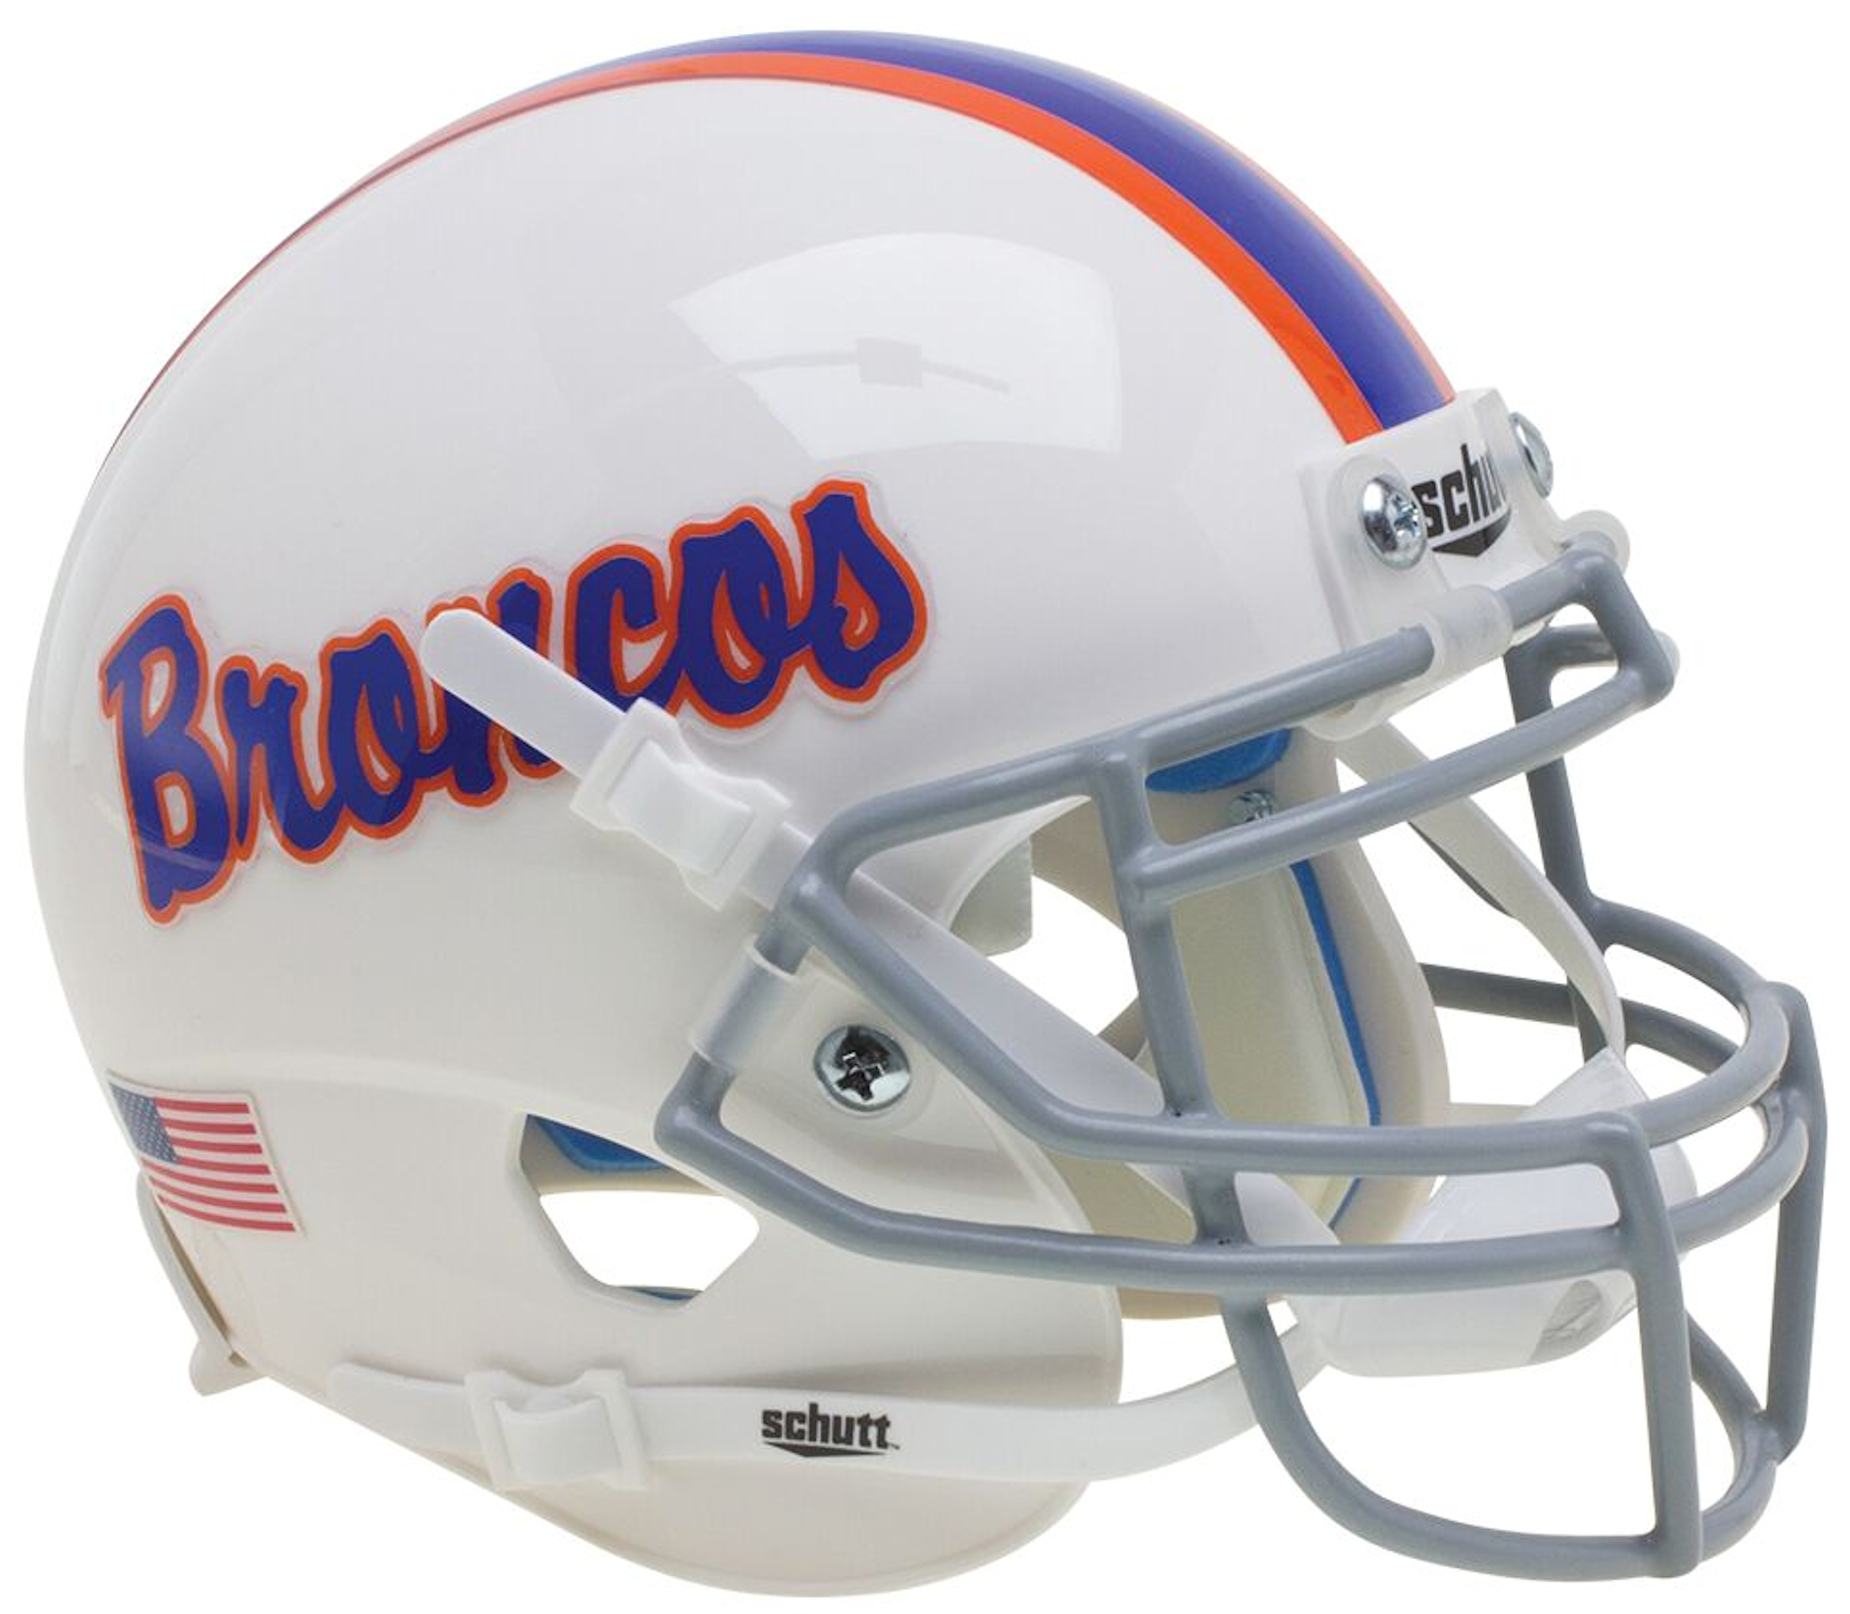 Boise State Broncos Authentic College XP Football Helmet Schutt <B>White With Pinstripe</B>